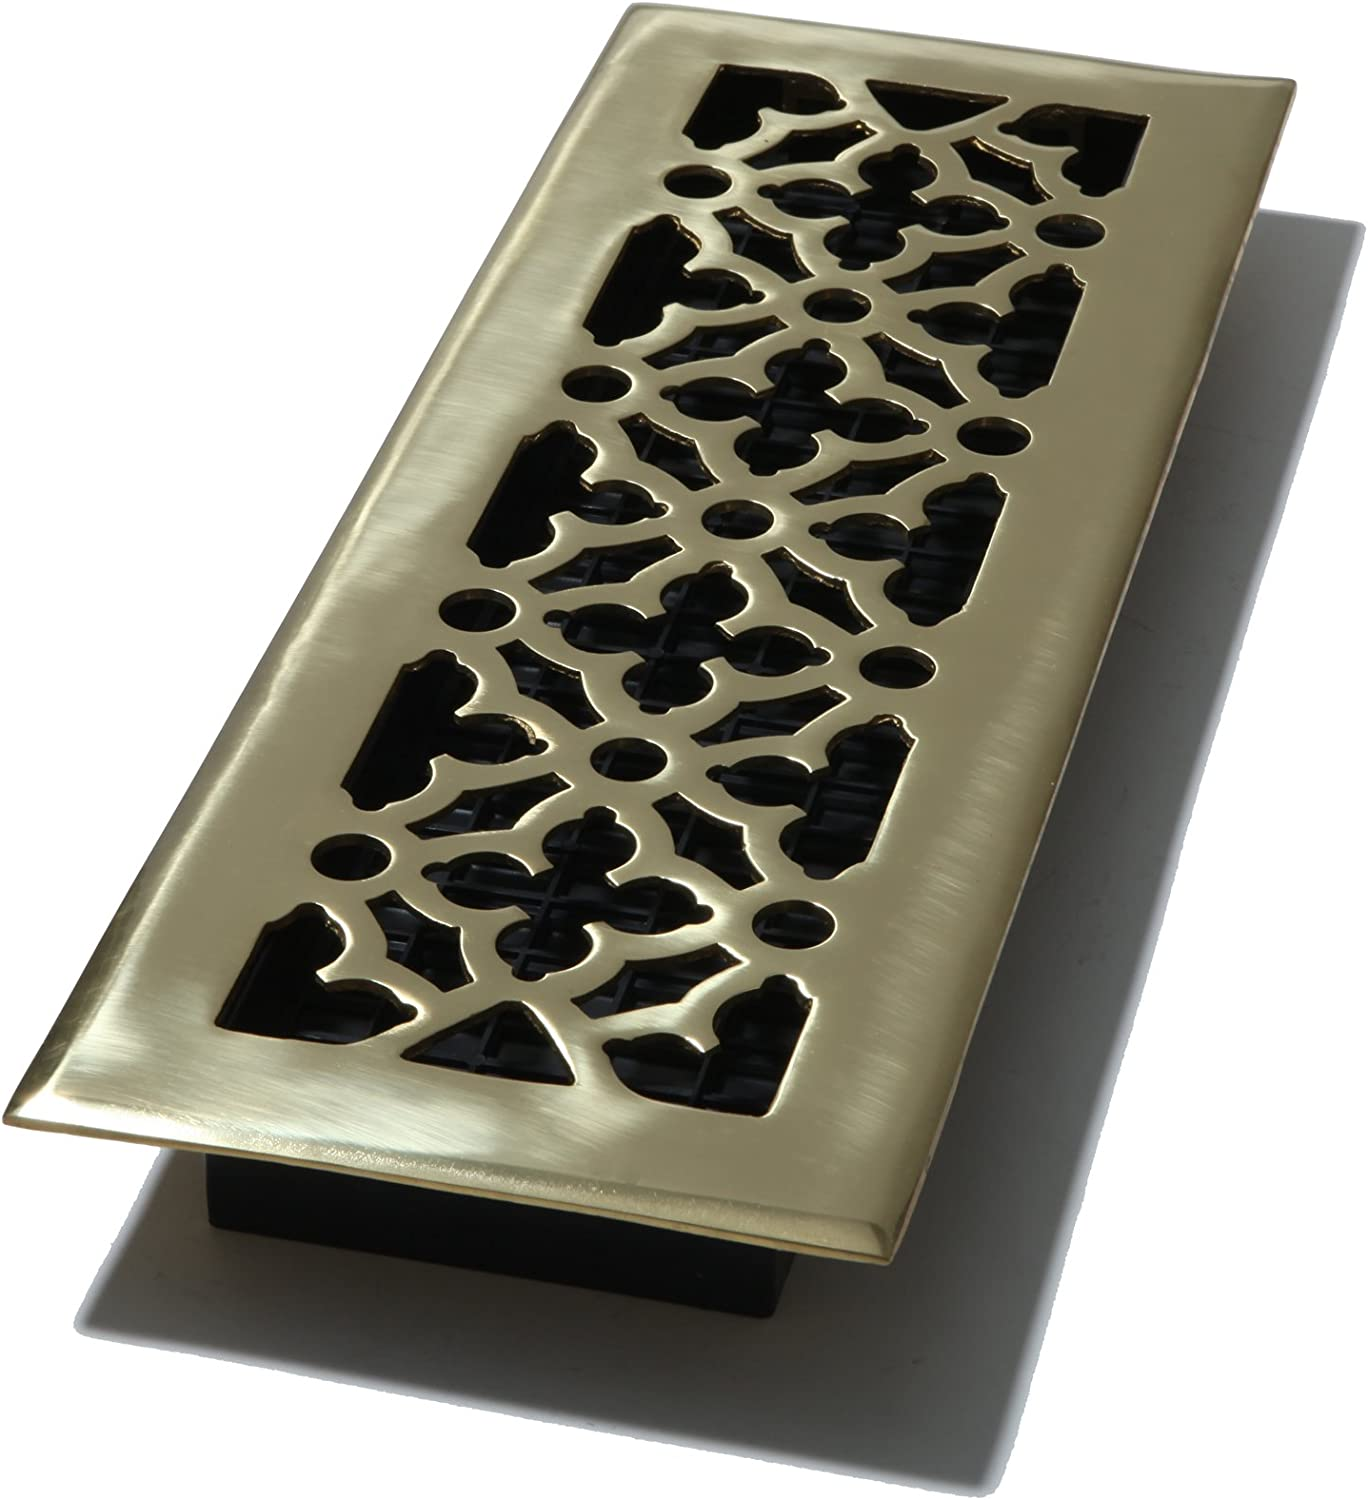 Decor Grates AG414 4-Inch by 14-Inch Gothic Floor Register, Solid Brass